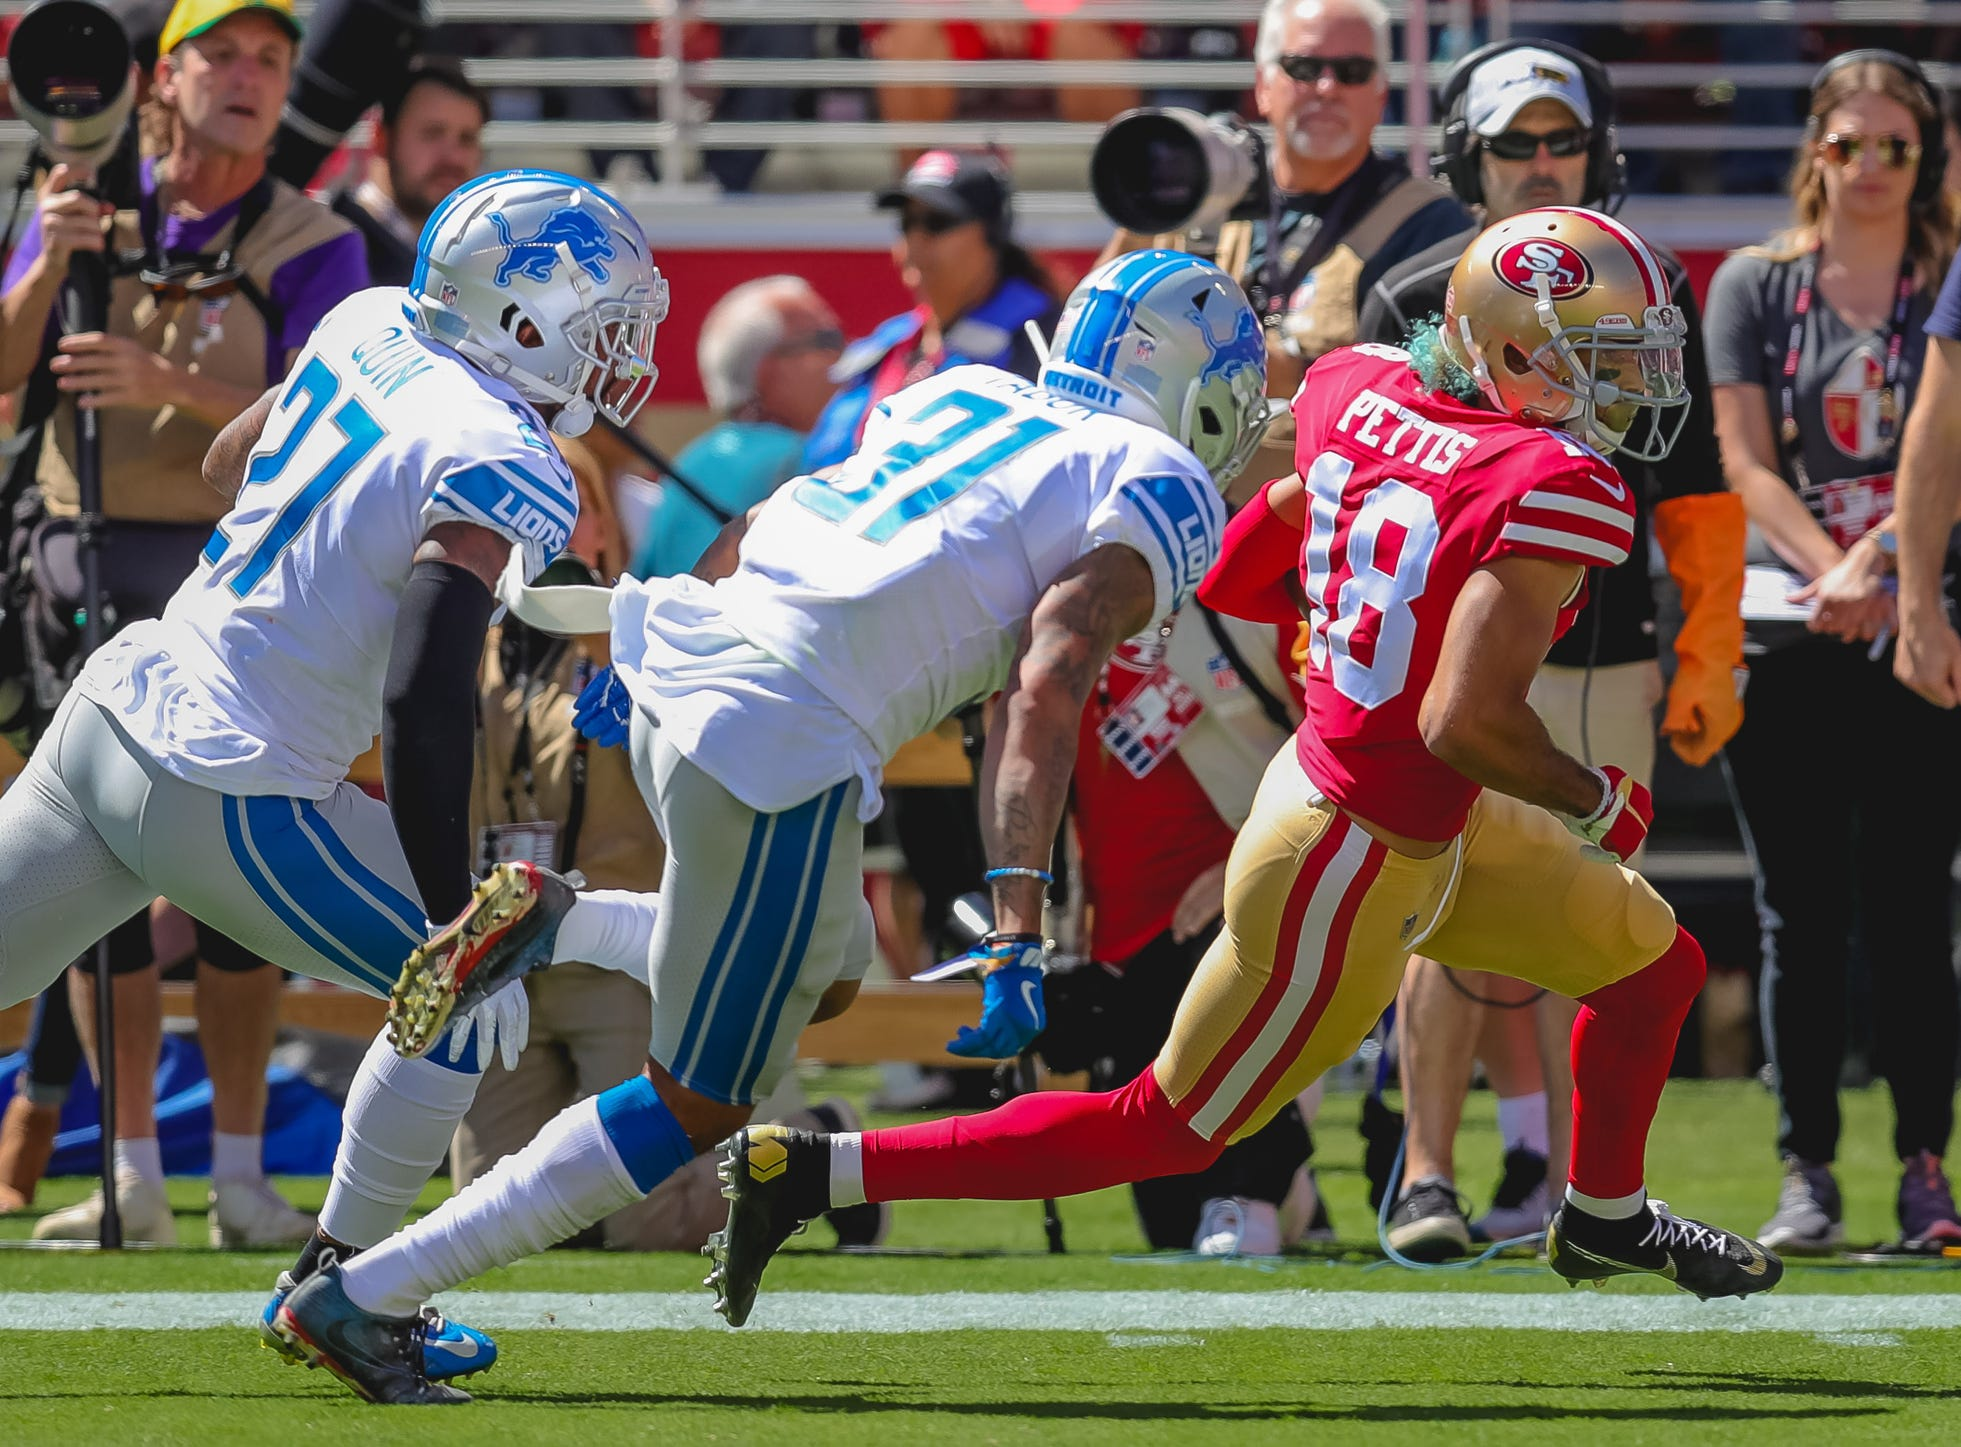 49ers wide receiver Dante Pettis runs past Lions cornerback Teez Tabor, middle, and safety Glover Quin during the first quarter on Sunday, Sept. 16, 2018, in Santa Clara, Calif.